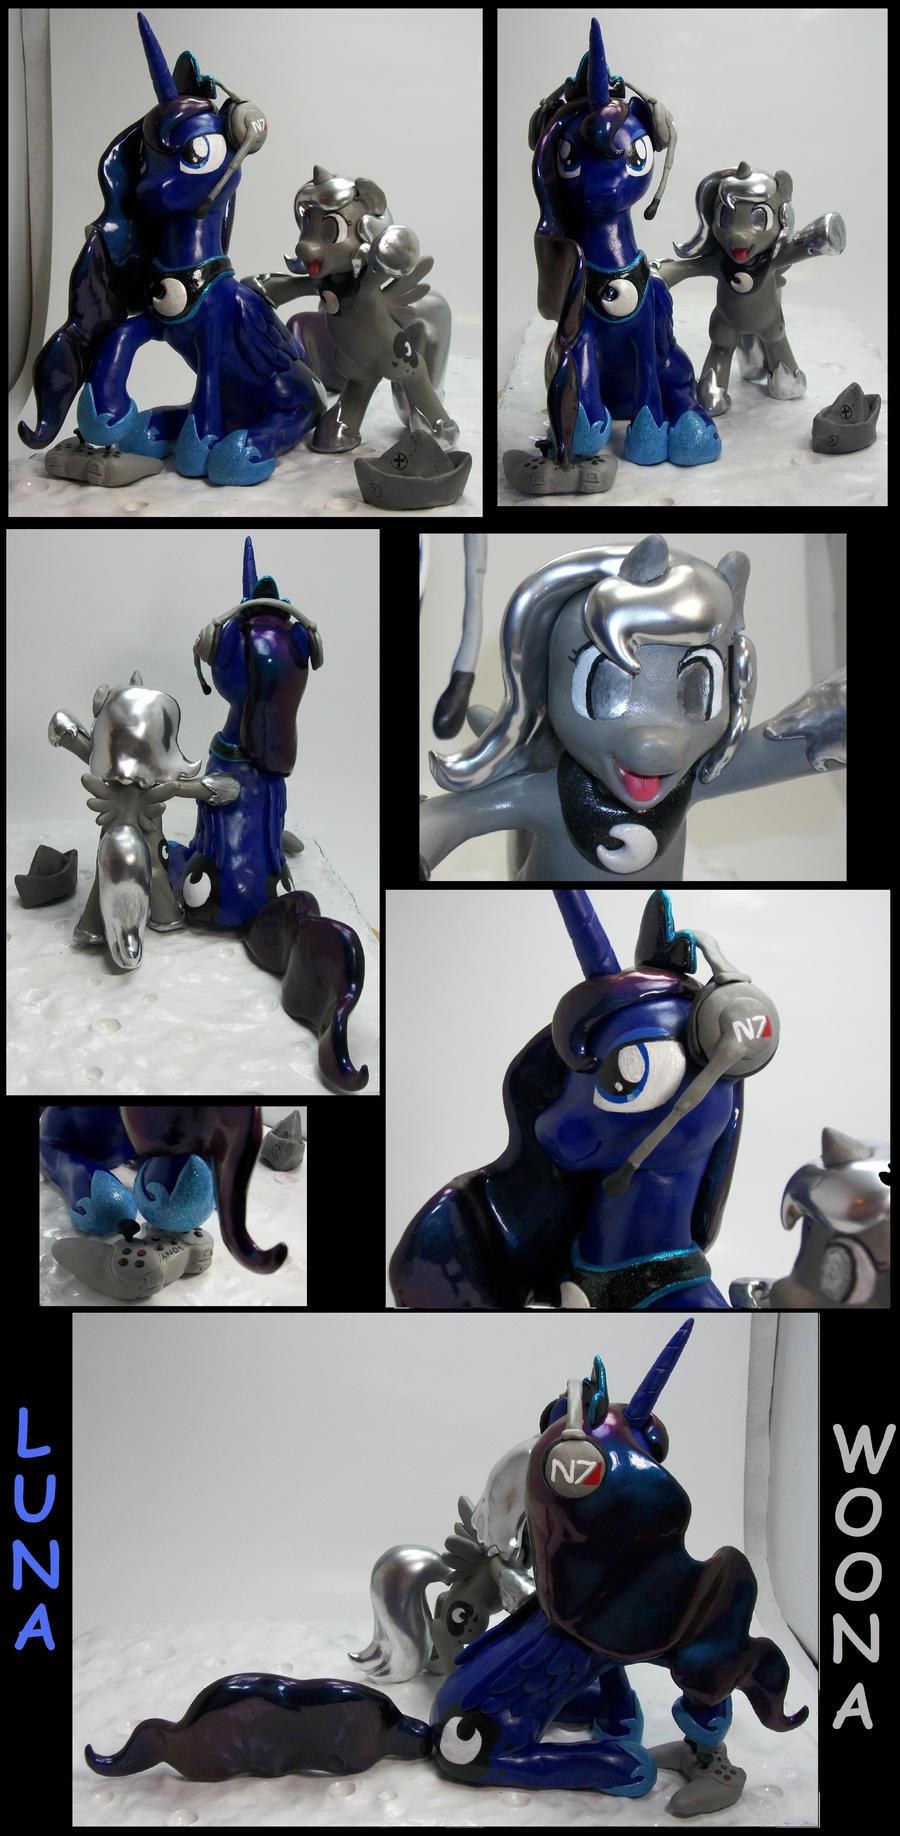 16 inch Gamer Luna Woona Color Change Chrome Hair by MadPonyScientist